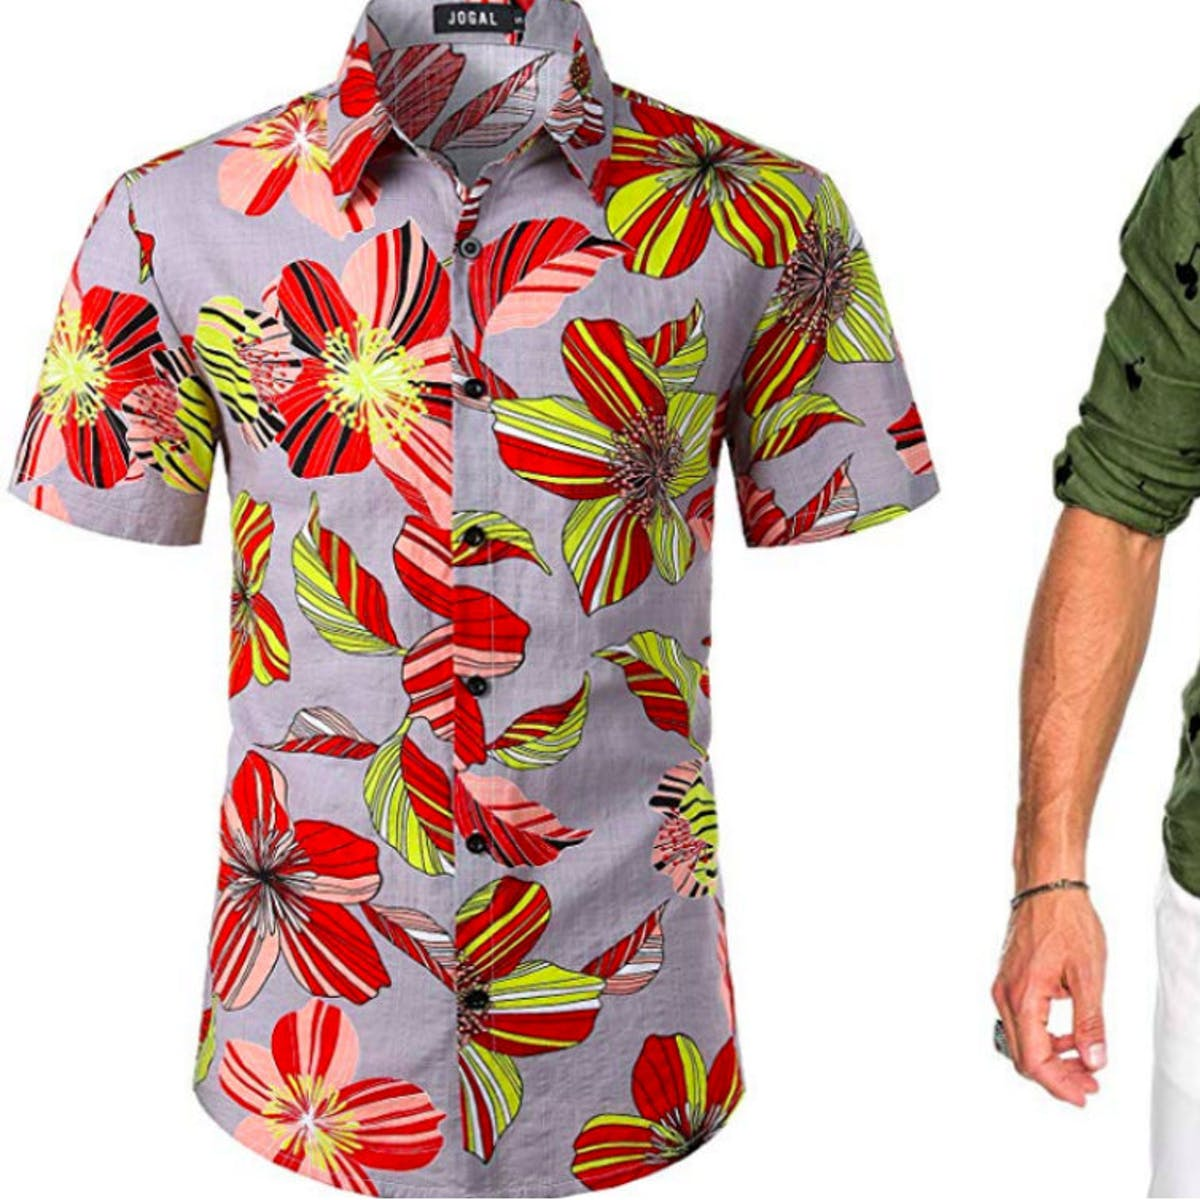 Printed Button Downs That Are Much Cooler Than Your Dad's Hawaiian Shirt